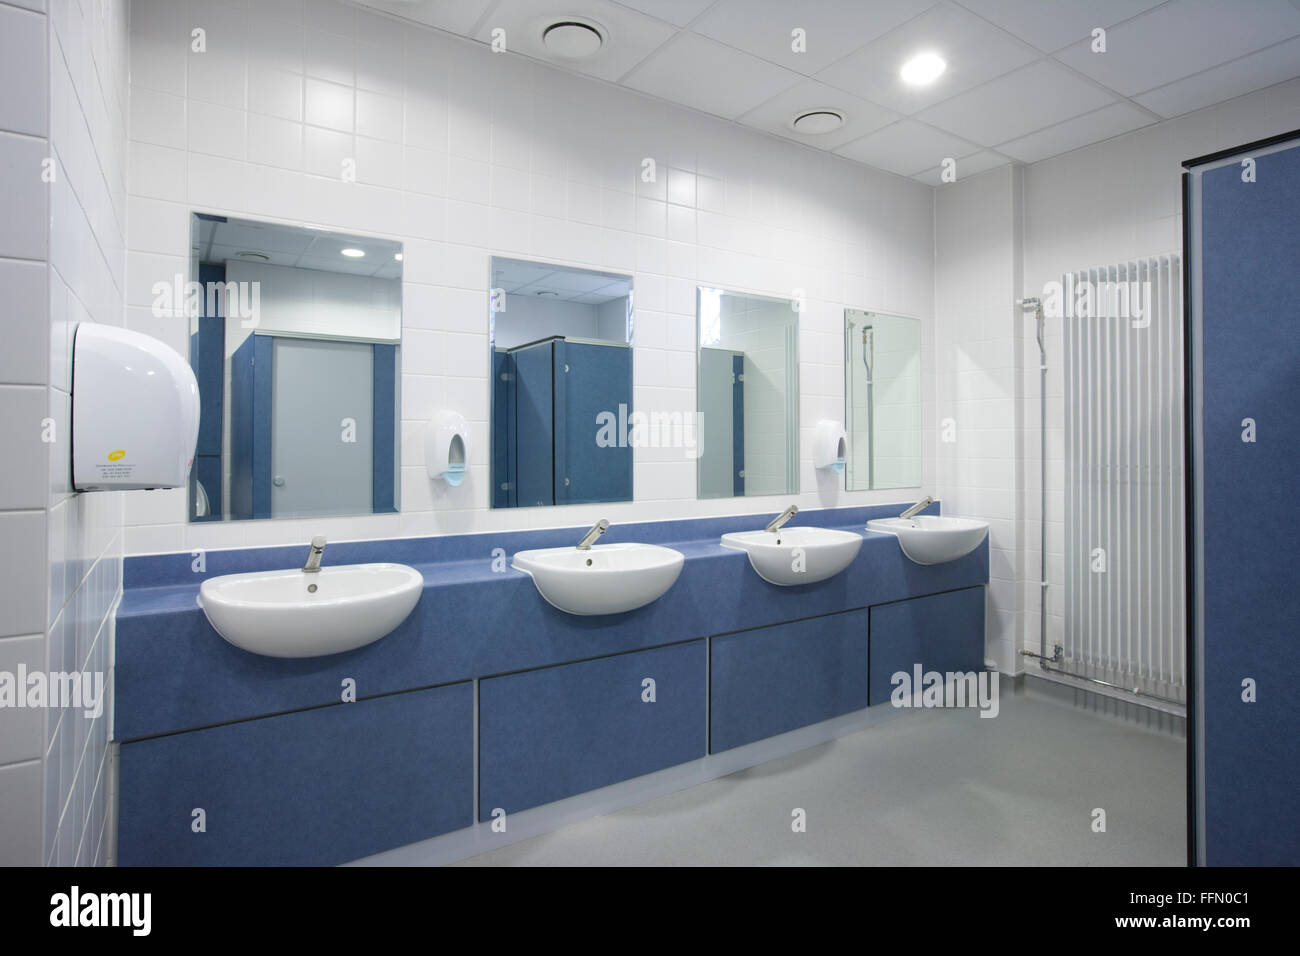 Modern Office Toilets And Washroom Stock Photo 95733009